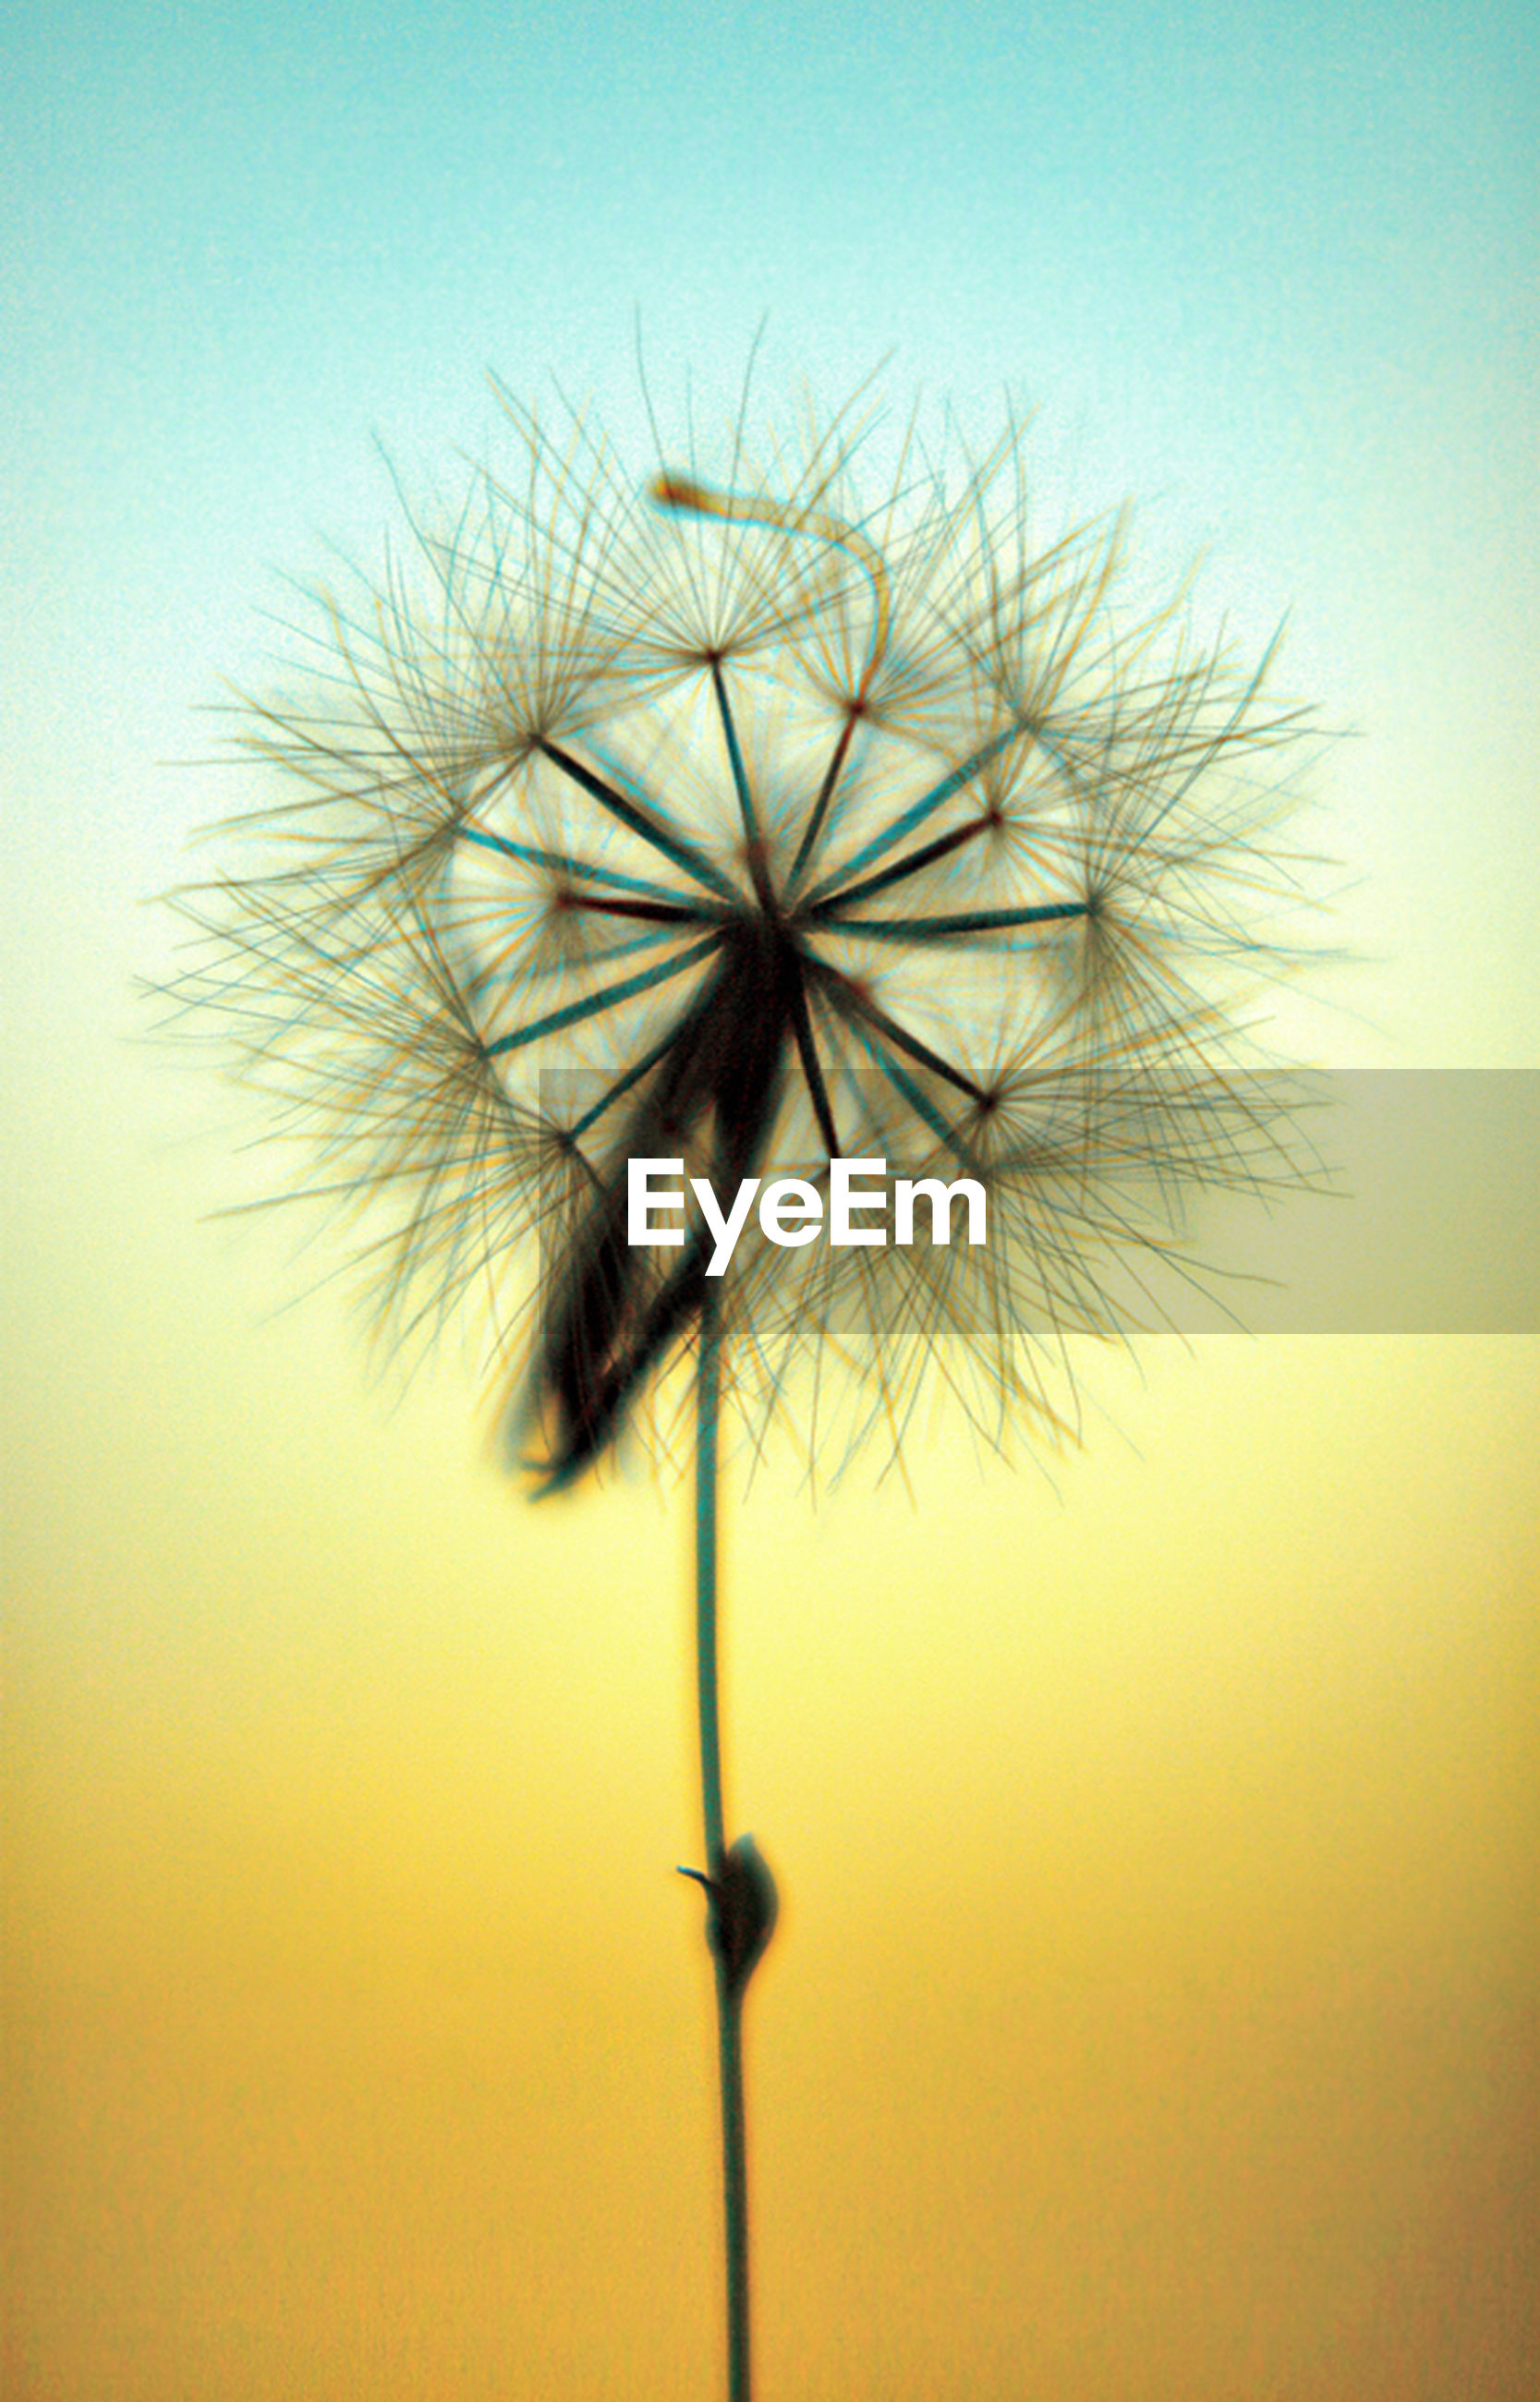 dandelion, flower, fragility, growth, stem, nature, close-up, flower head, single flower, beauty in nature, low angle view, softness, clear sky, plant, dandelion seed, sky, freshness, uncultivated, seed, no people